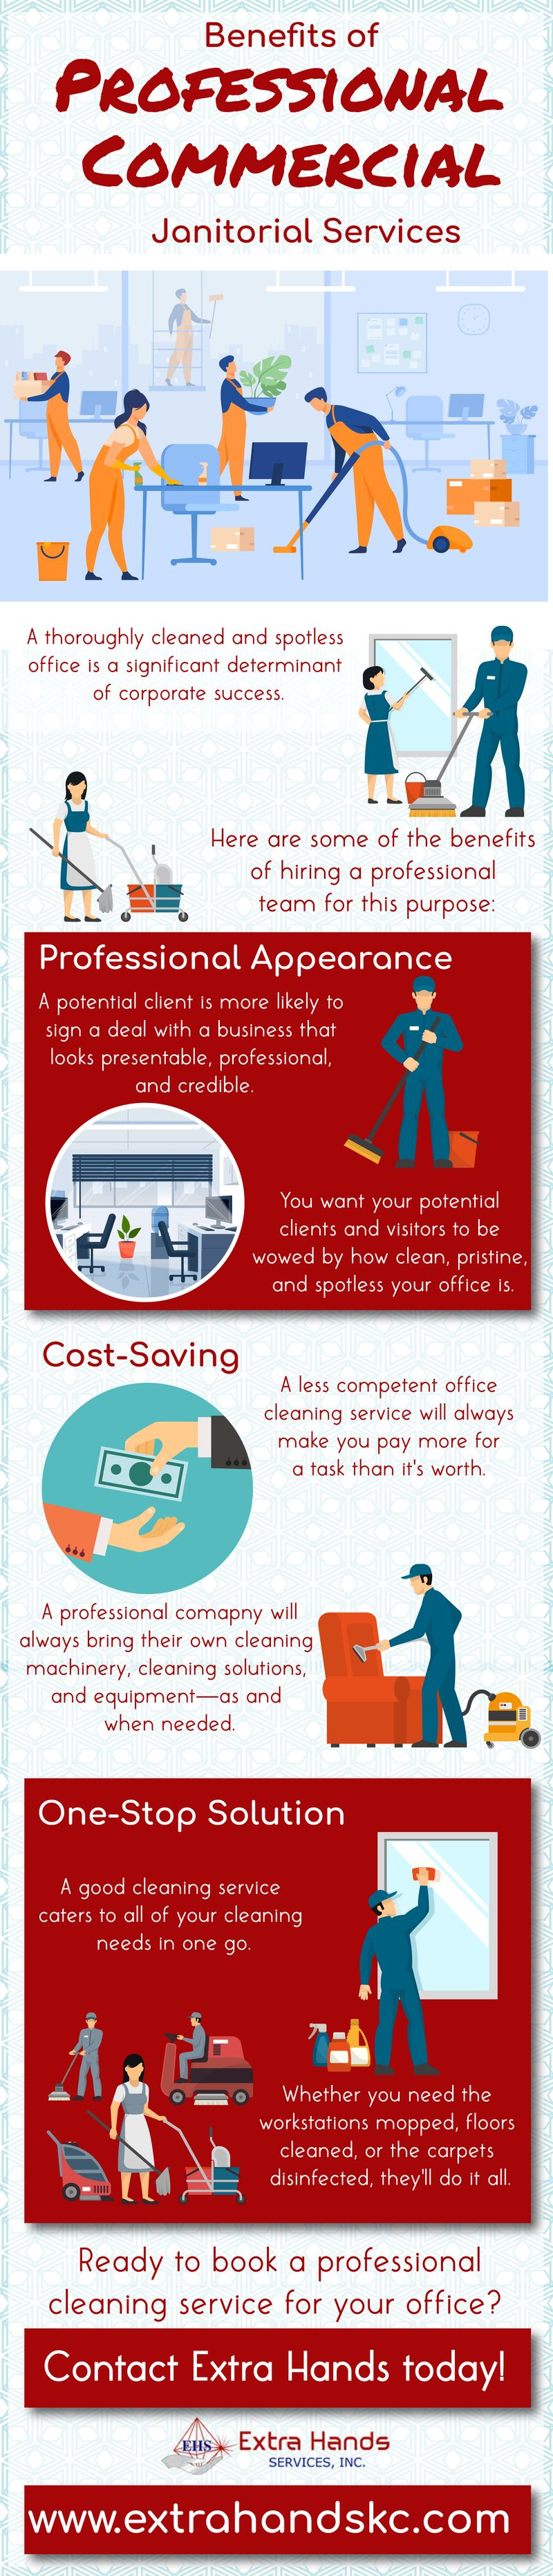 Benefits Of Professional Commercial Janitorial Services